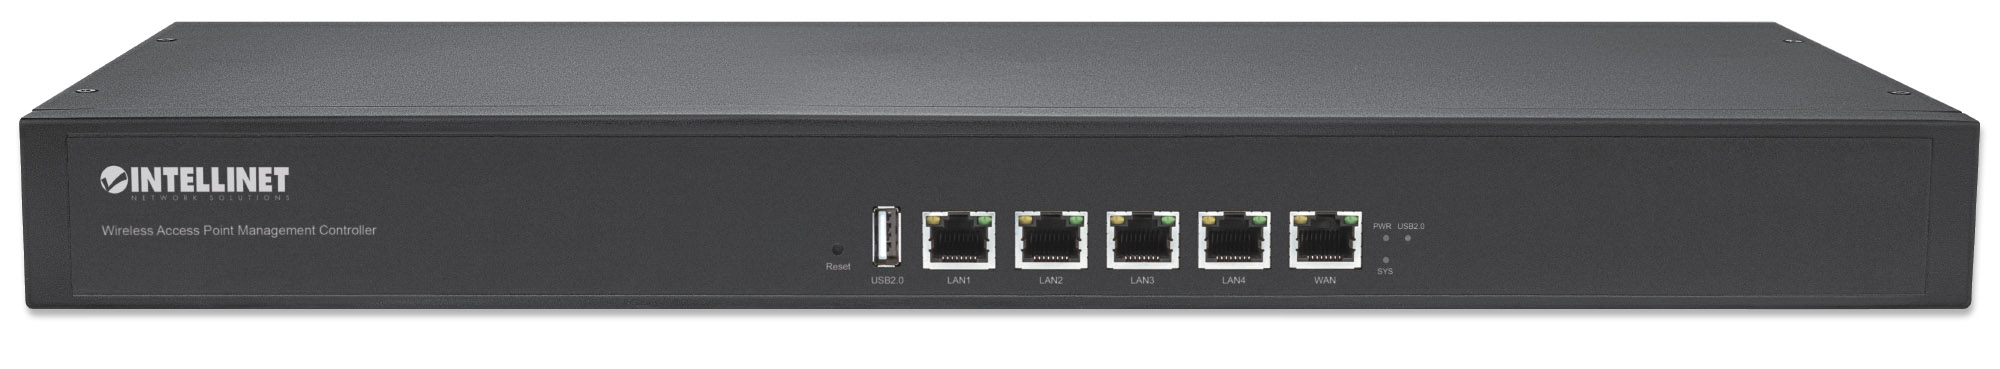 Wireless Access Point Management Controller